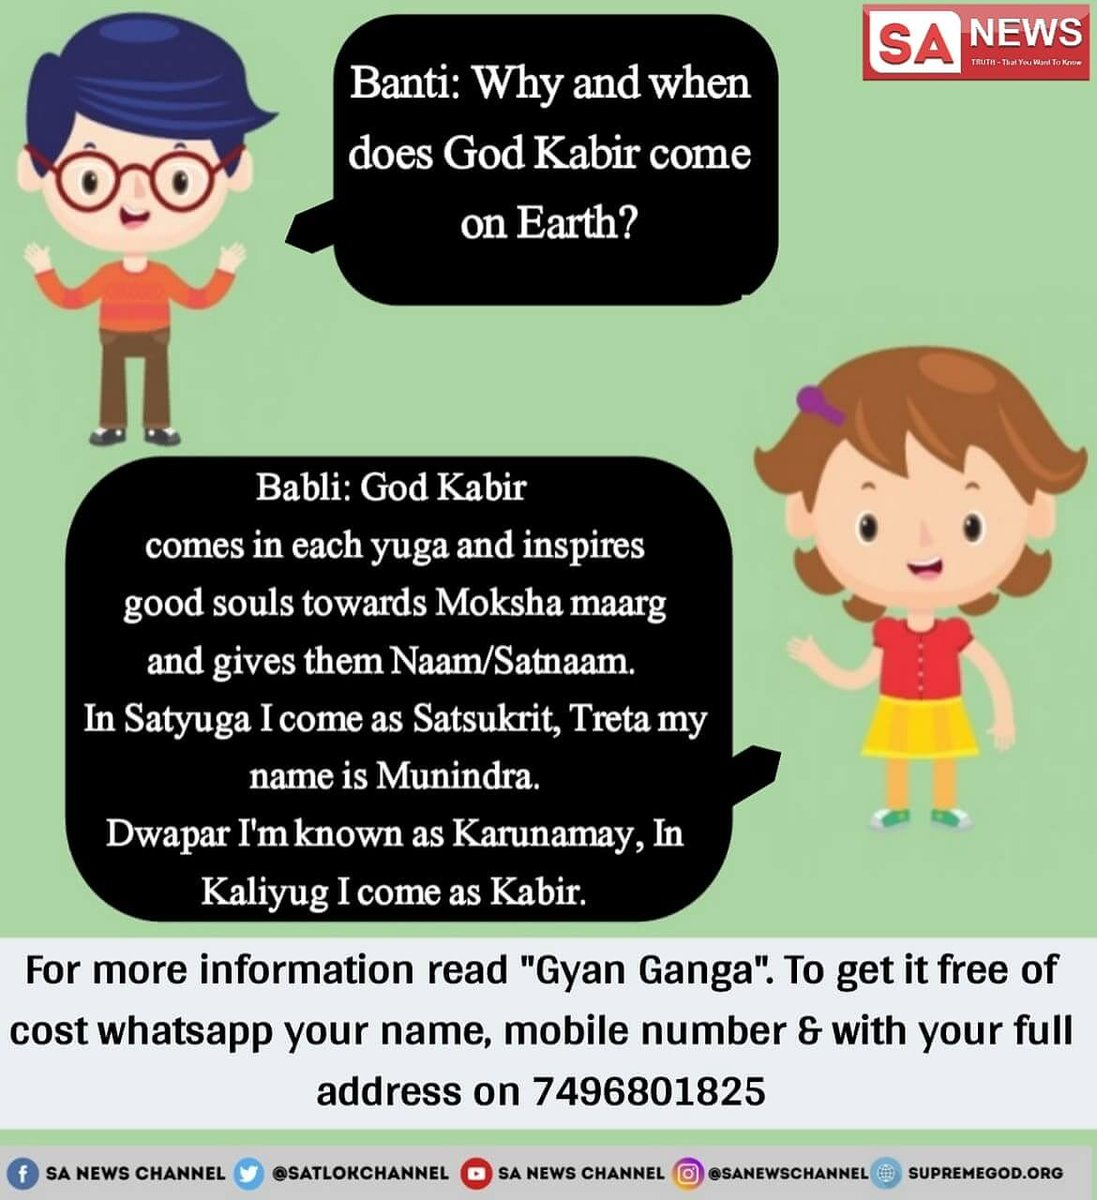 #WednesdayWisdom God is kabir. He is in form. He lives in satlok. Watch satsang by Sant Rampal ji Maharaj sadhana channel 7.30 pm. <br>http://pic.twitter.com/V0KDpNTylc